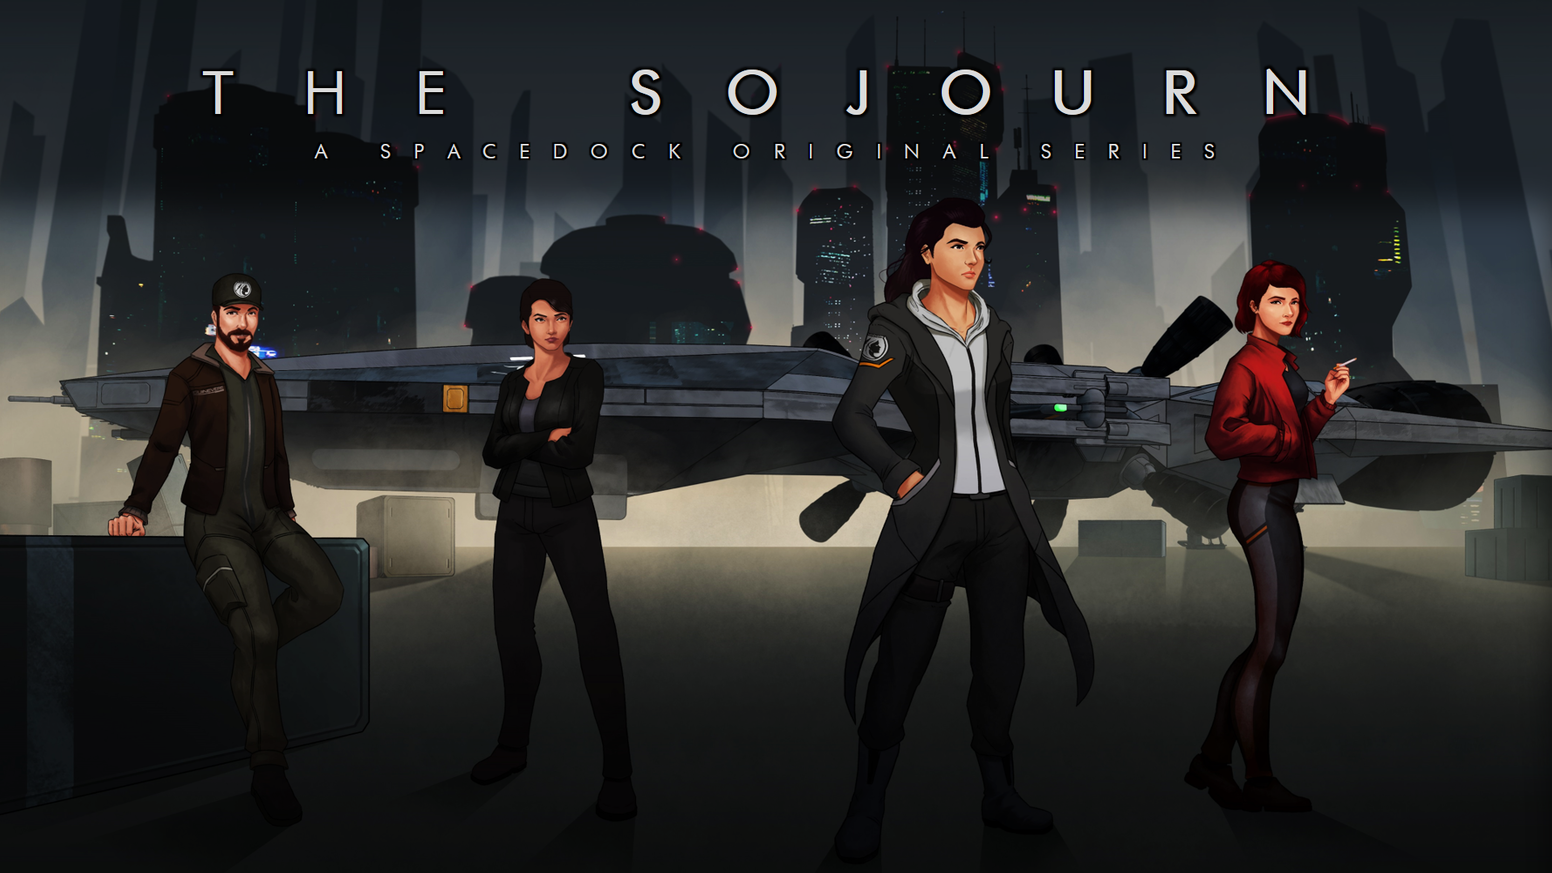 The Sojourn is an original Science Fiction Drama, produced by Spacedock. The series follows a bold expedition into extragalactic space